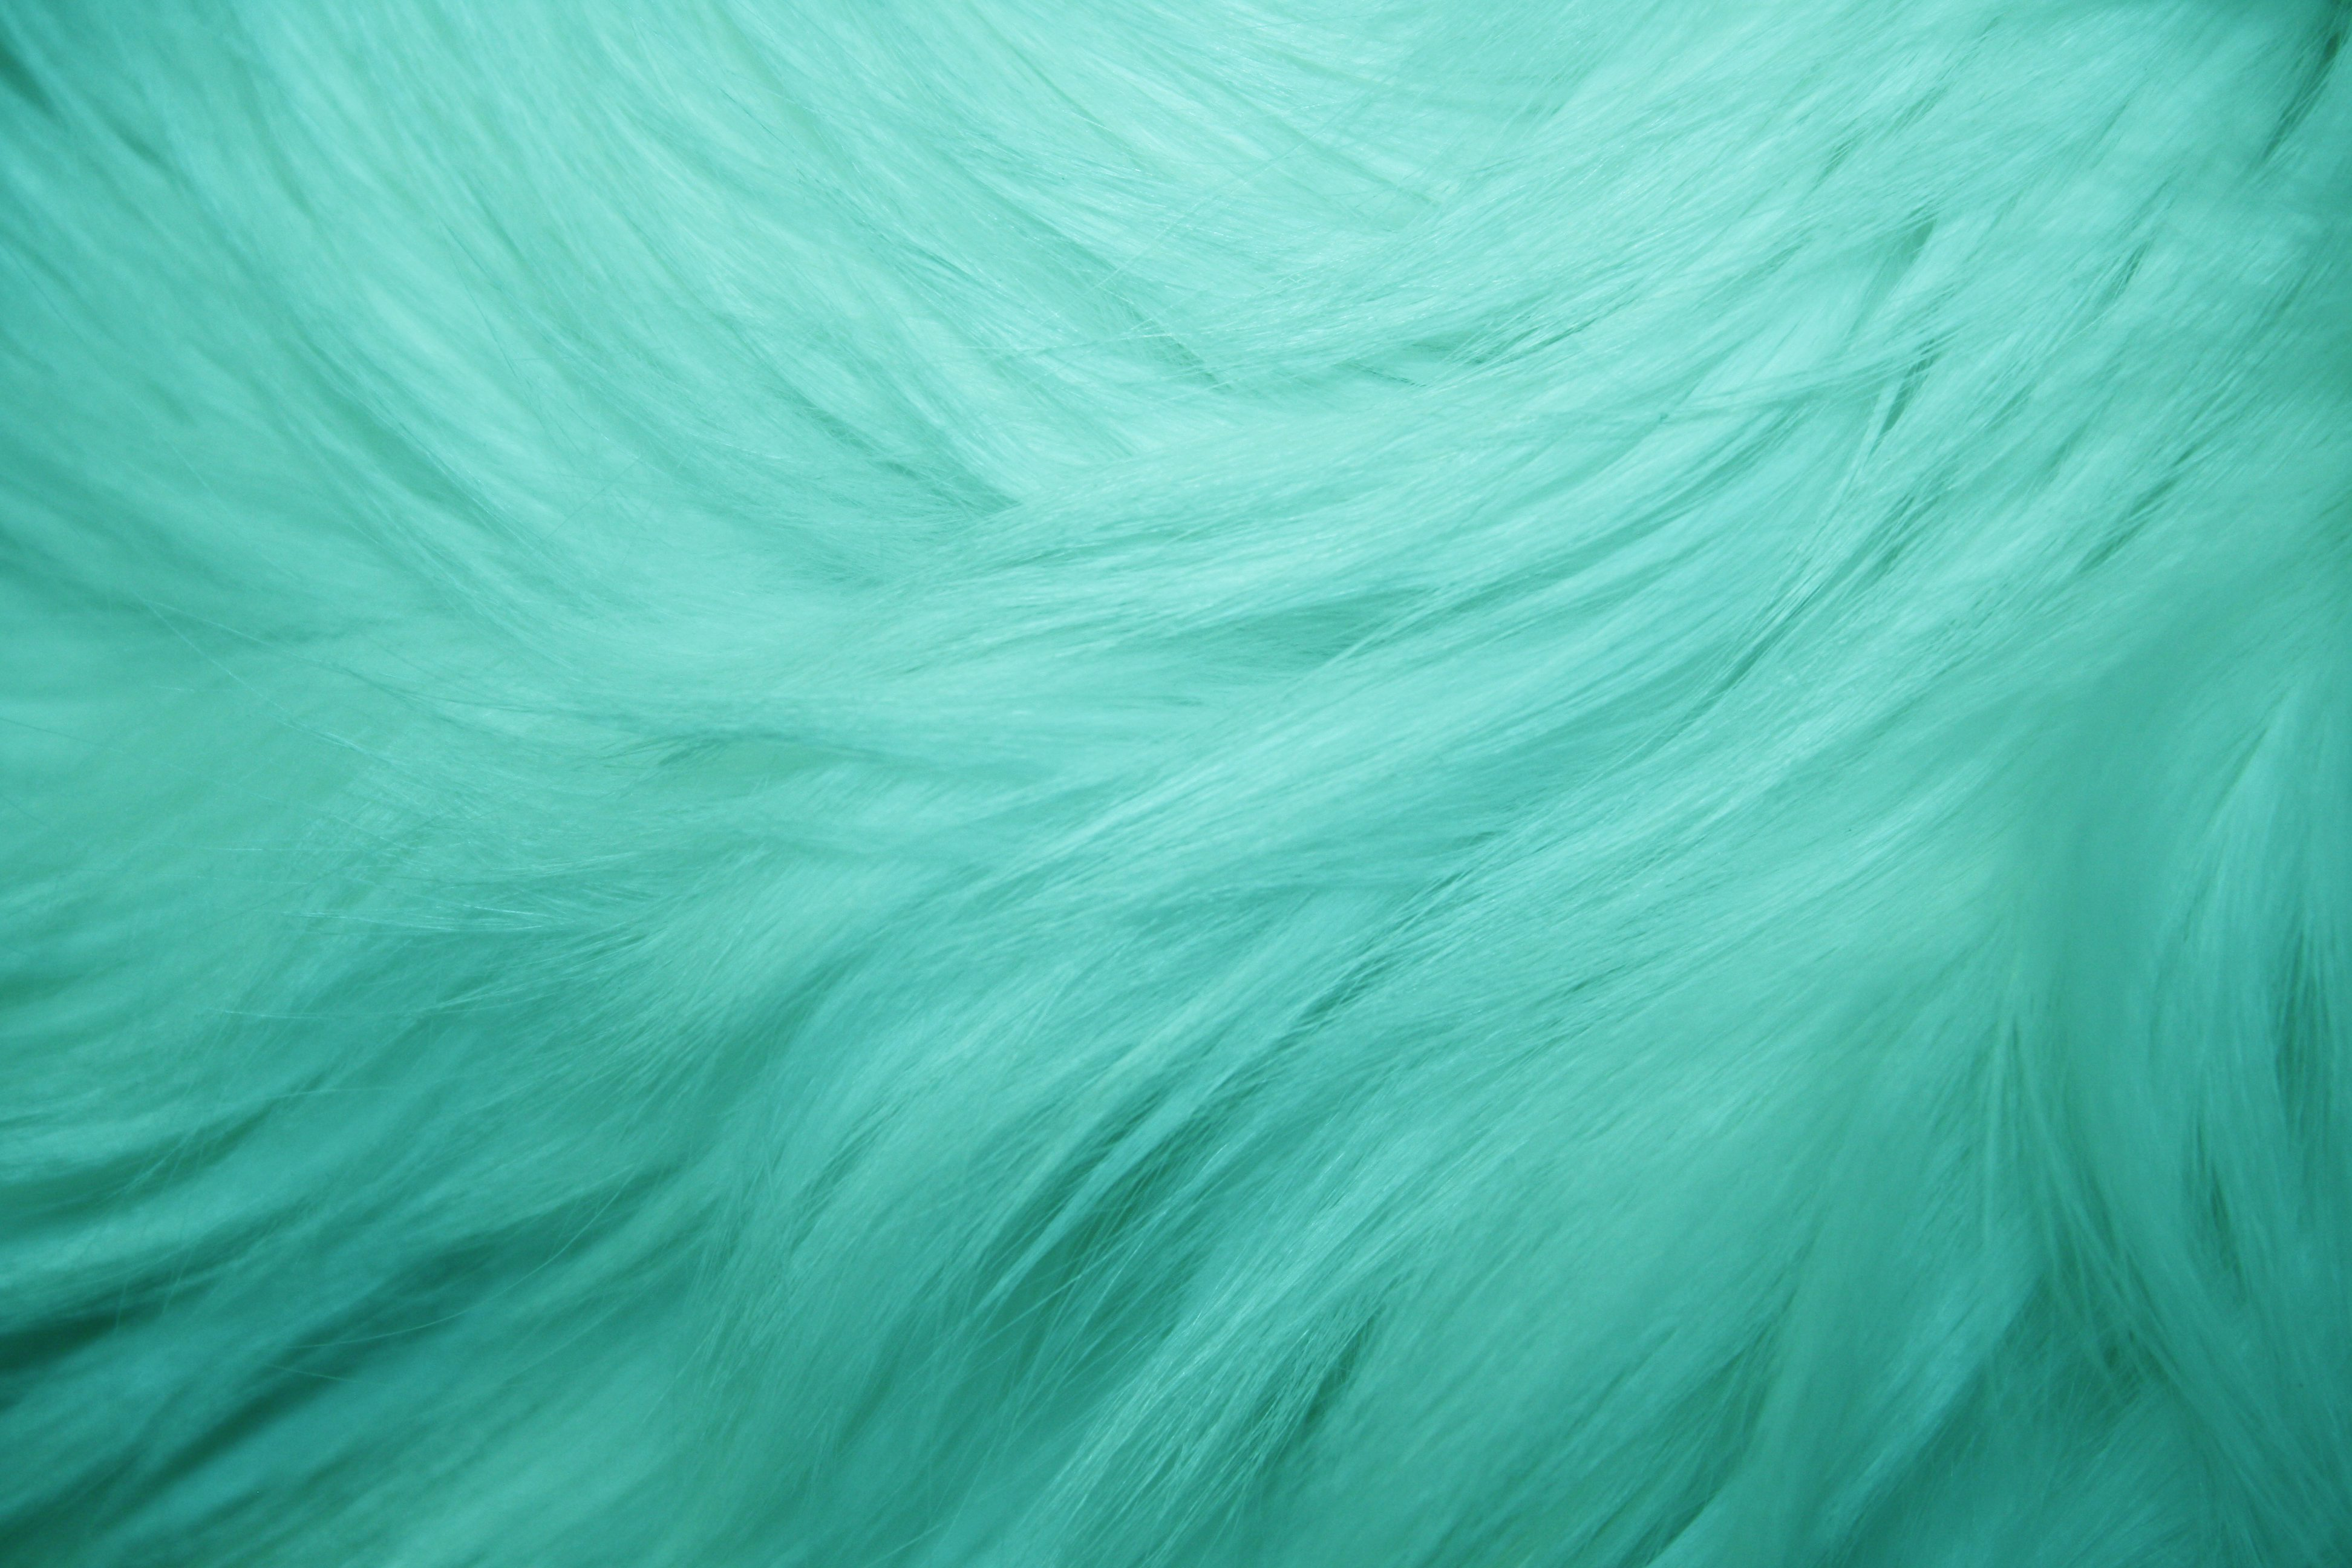 Teal Fur Texture Picture Free Photograph Photos Public